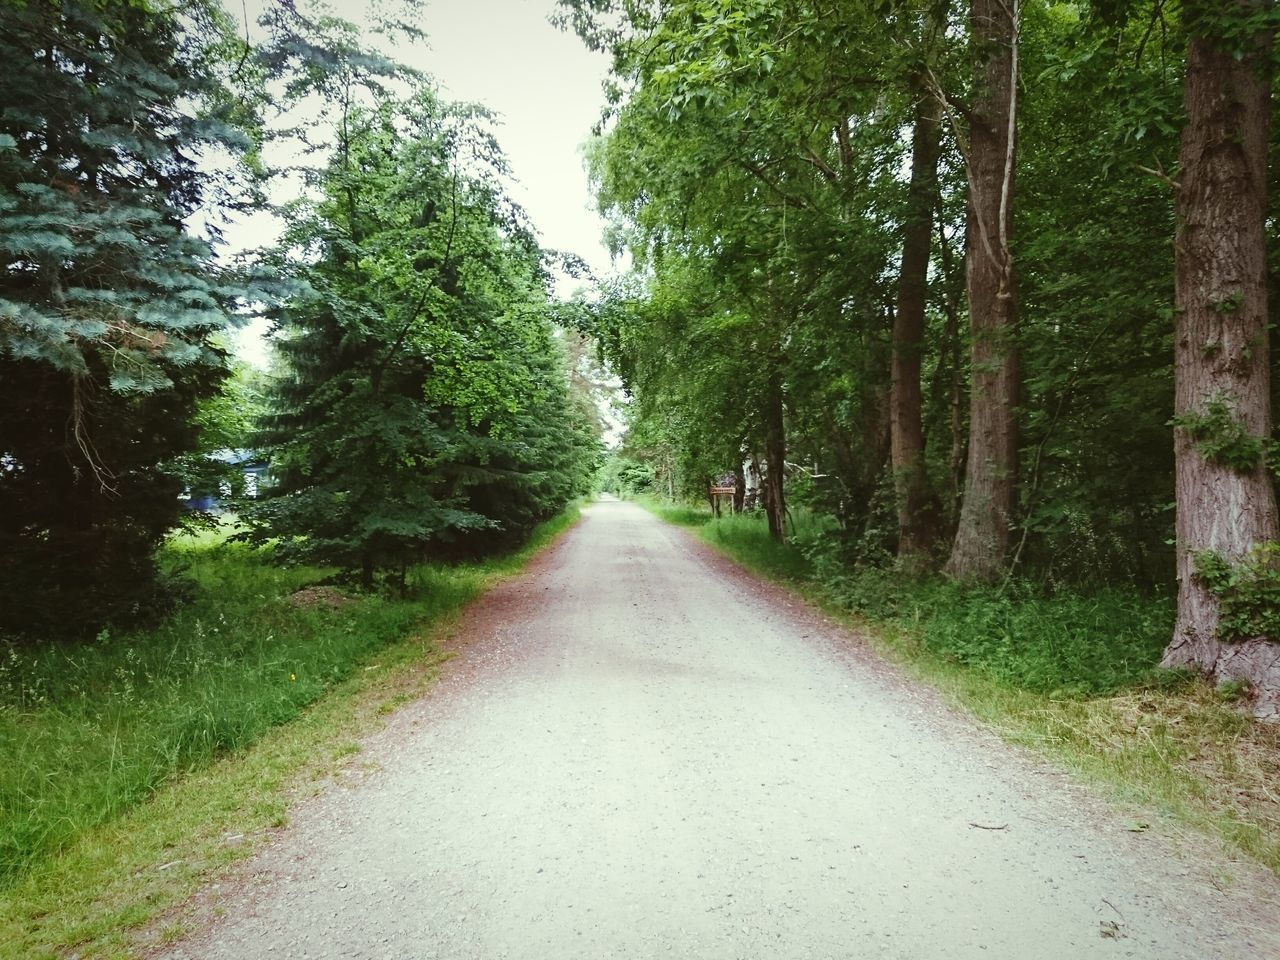 Empty Road By Trees In Forest